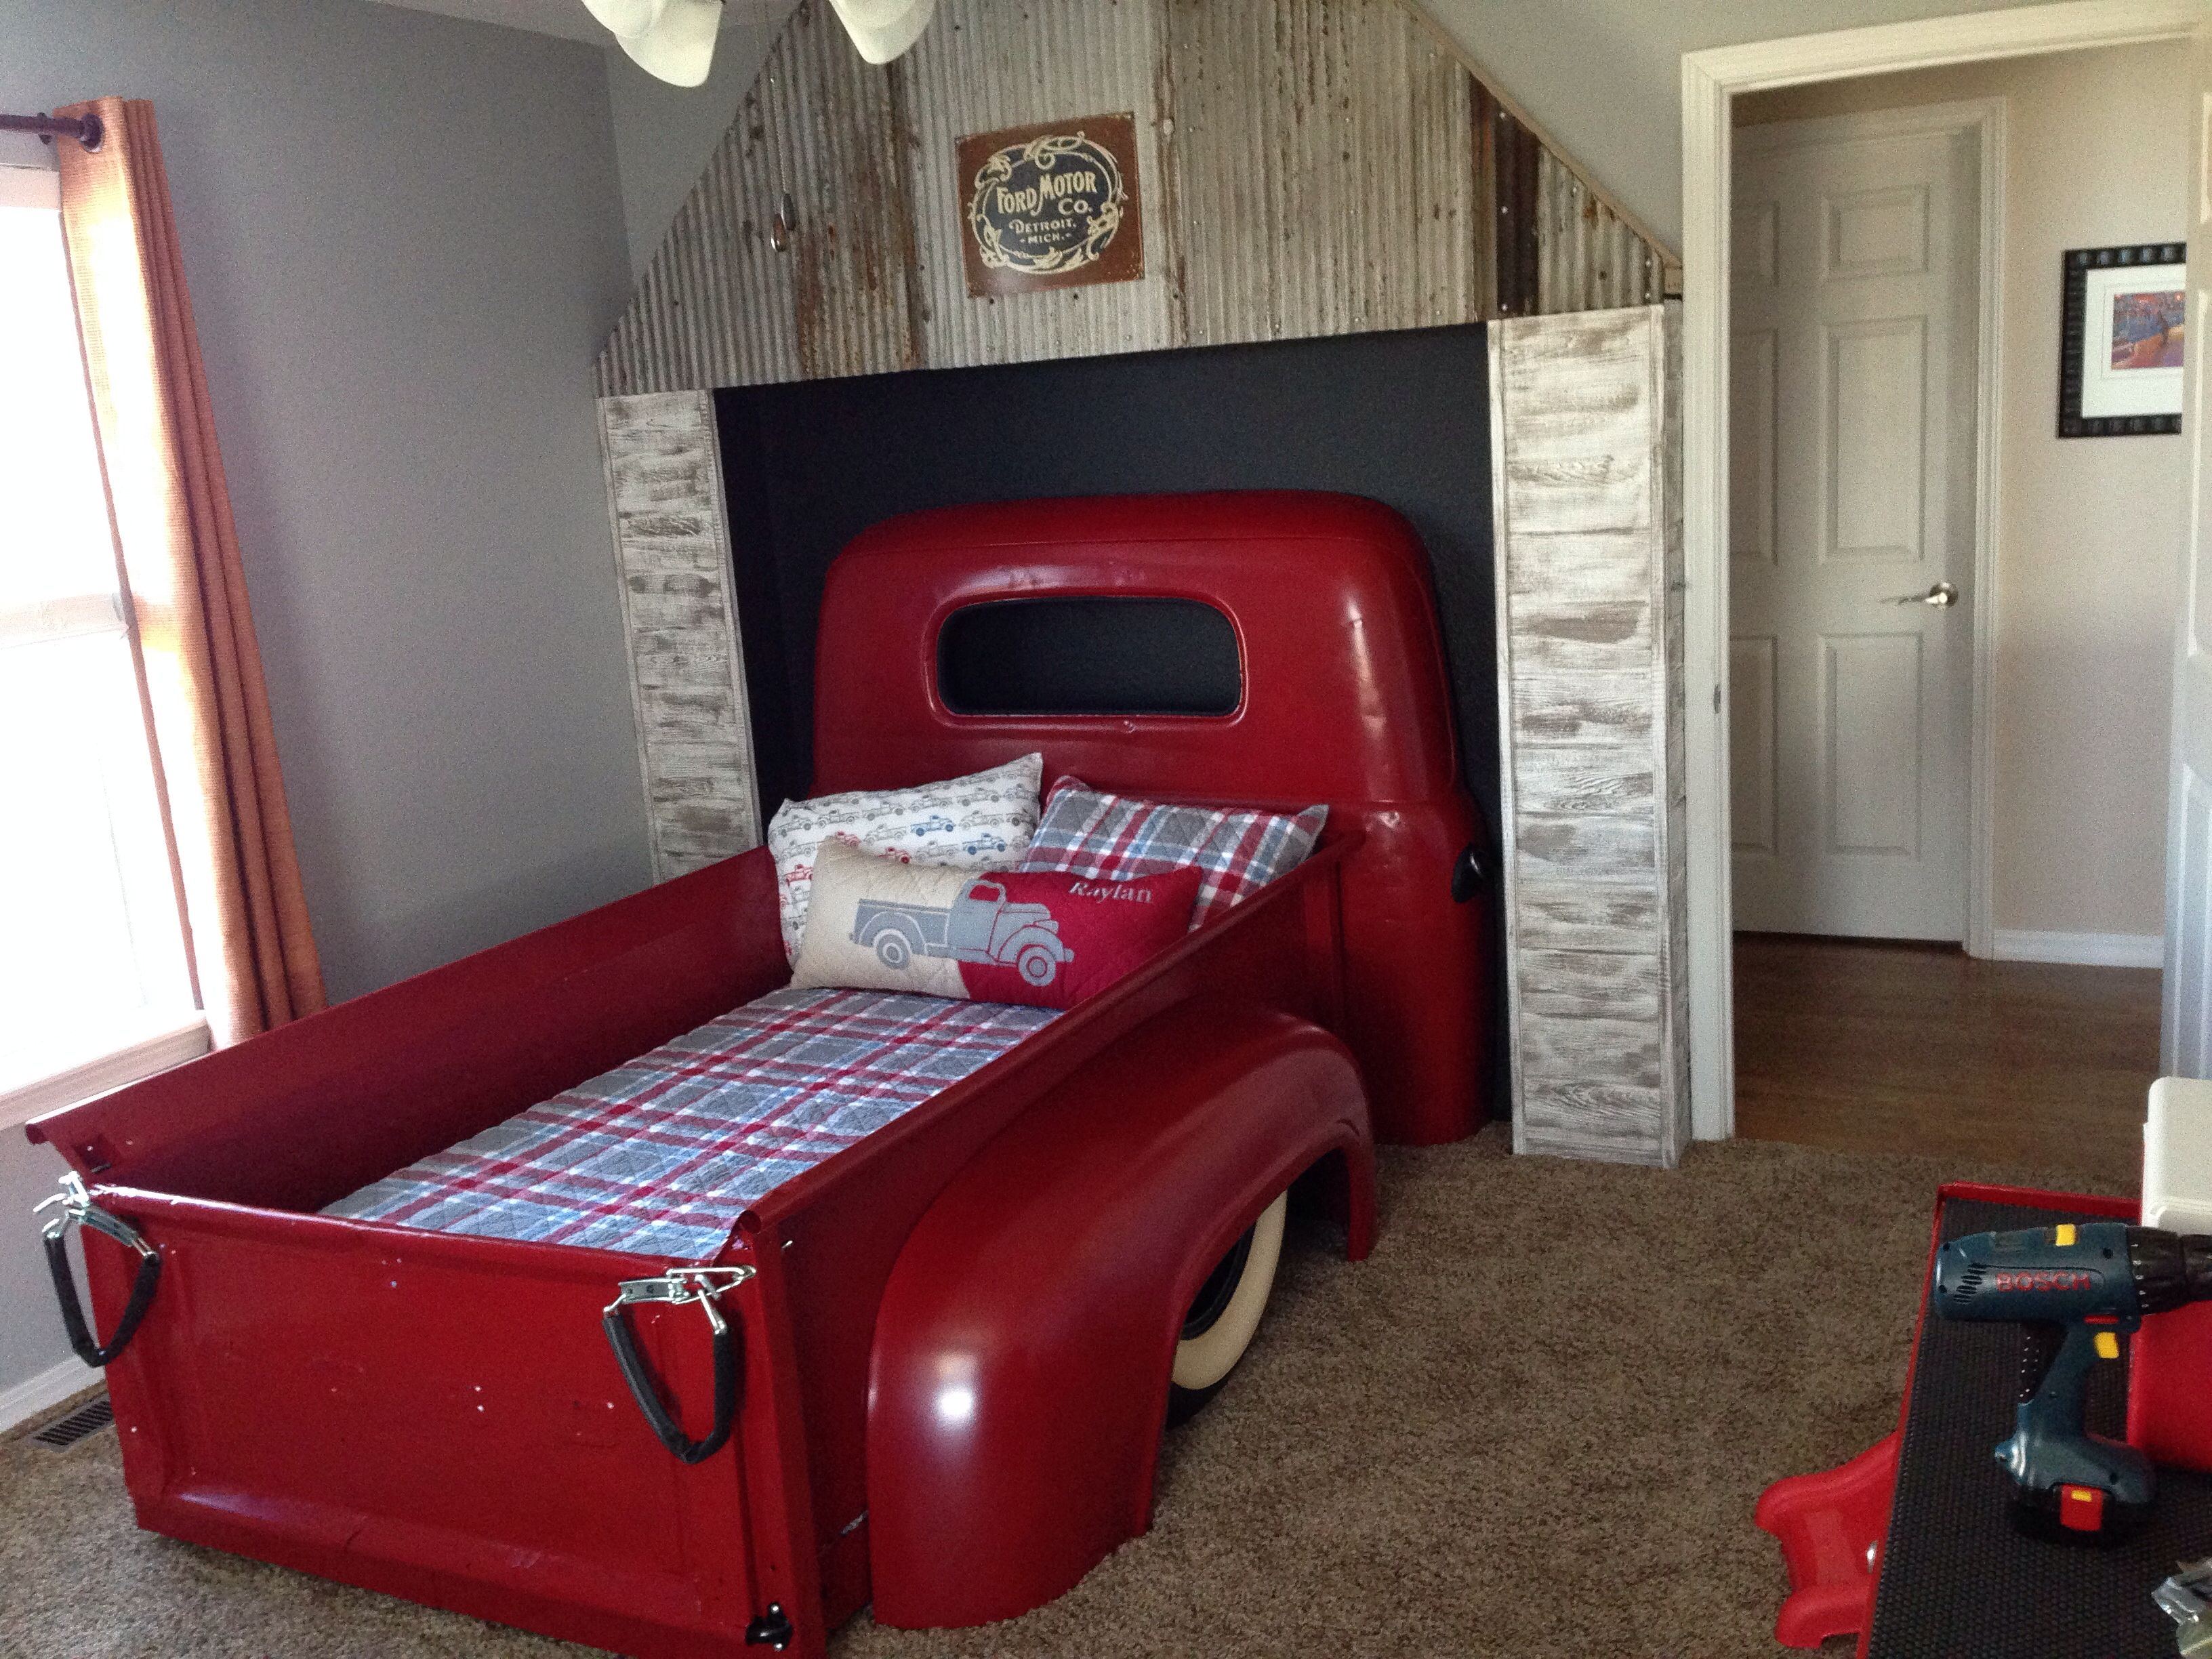 Kids Room Fascinating Bedroom Idea With Amazing Classic Car Bed For Desk Fur Rug High Gloss Finish Library Picture Frame Pouffe Red Quilt Wall